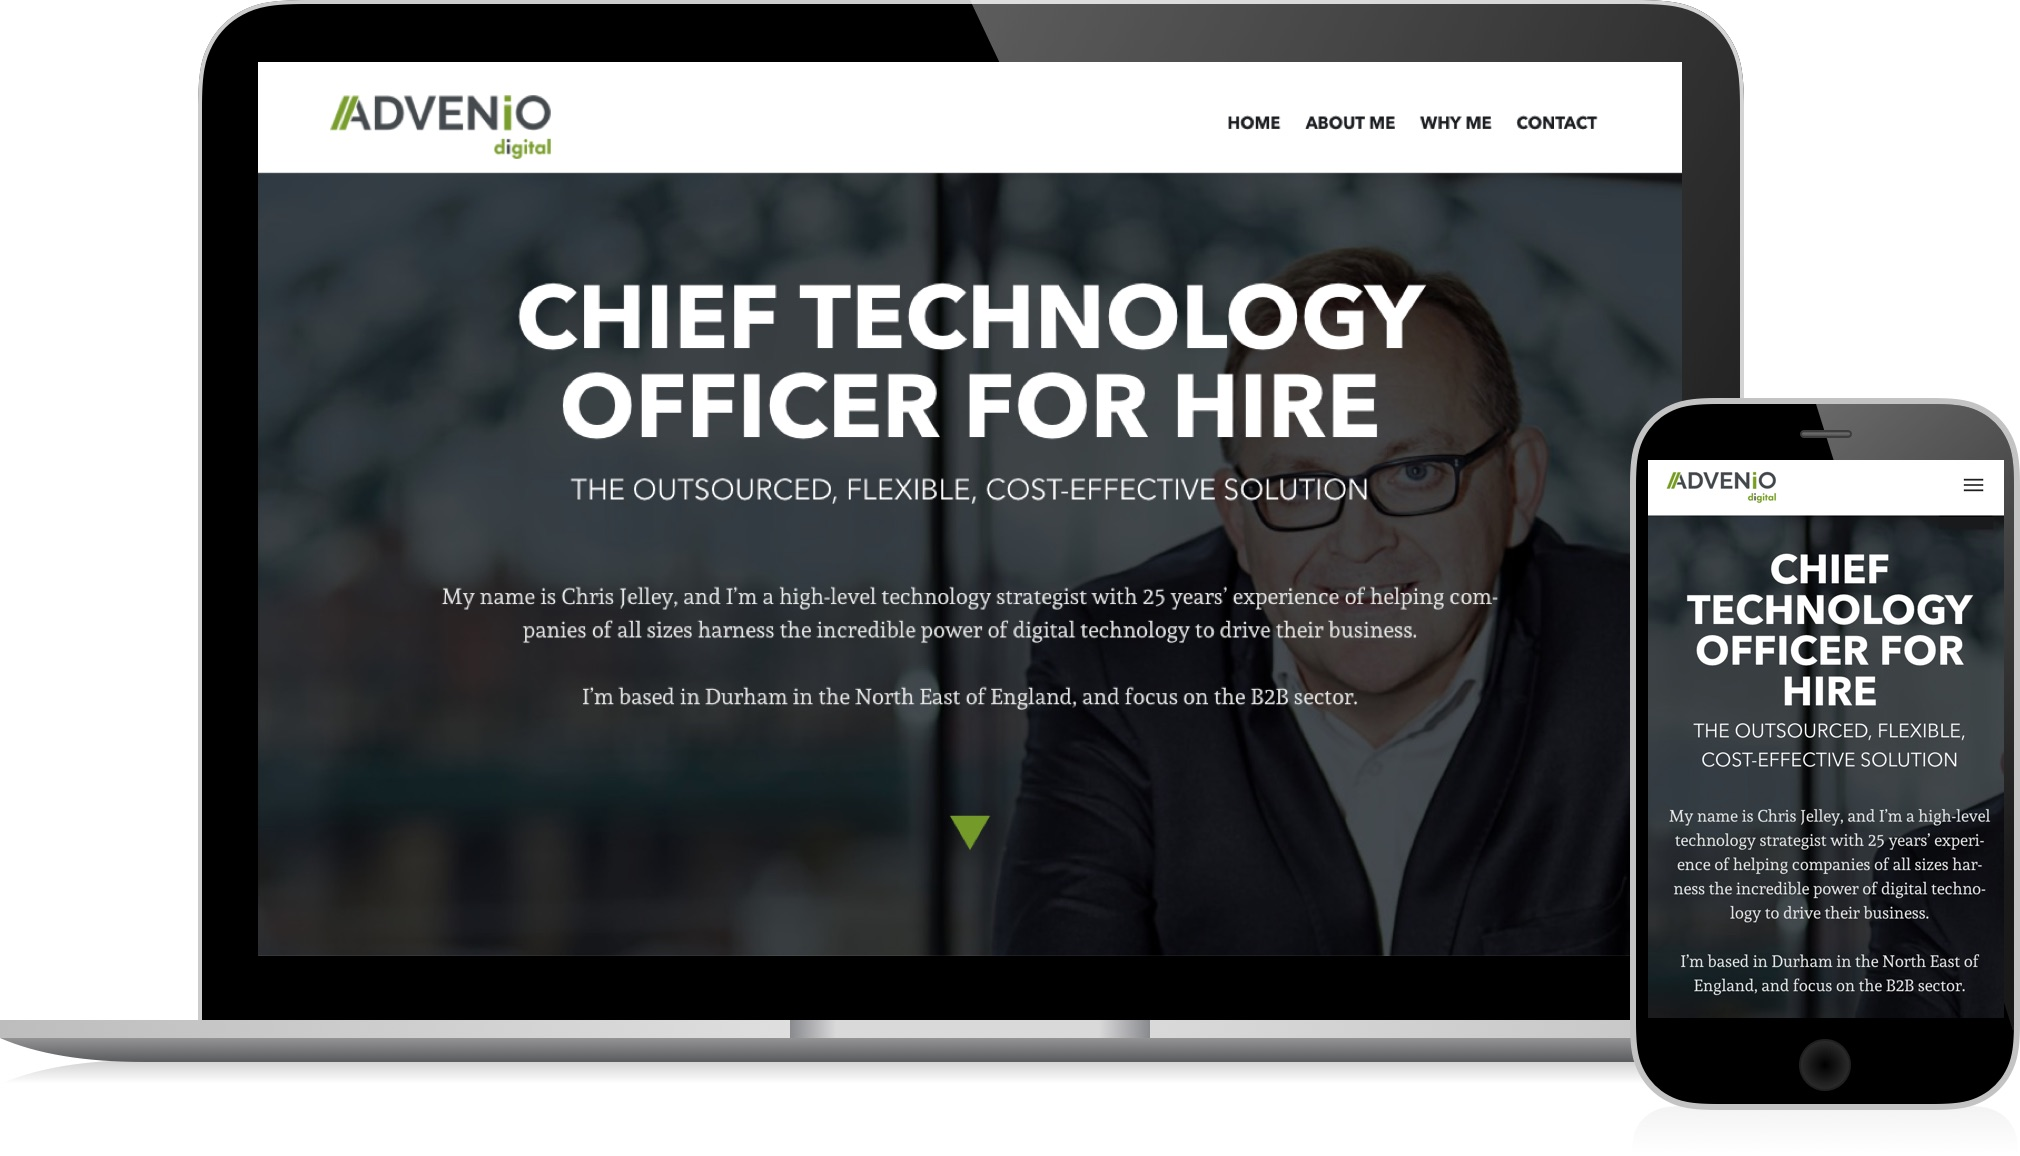 Advenio Digital - responsive website by HeavyGuru web design, London